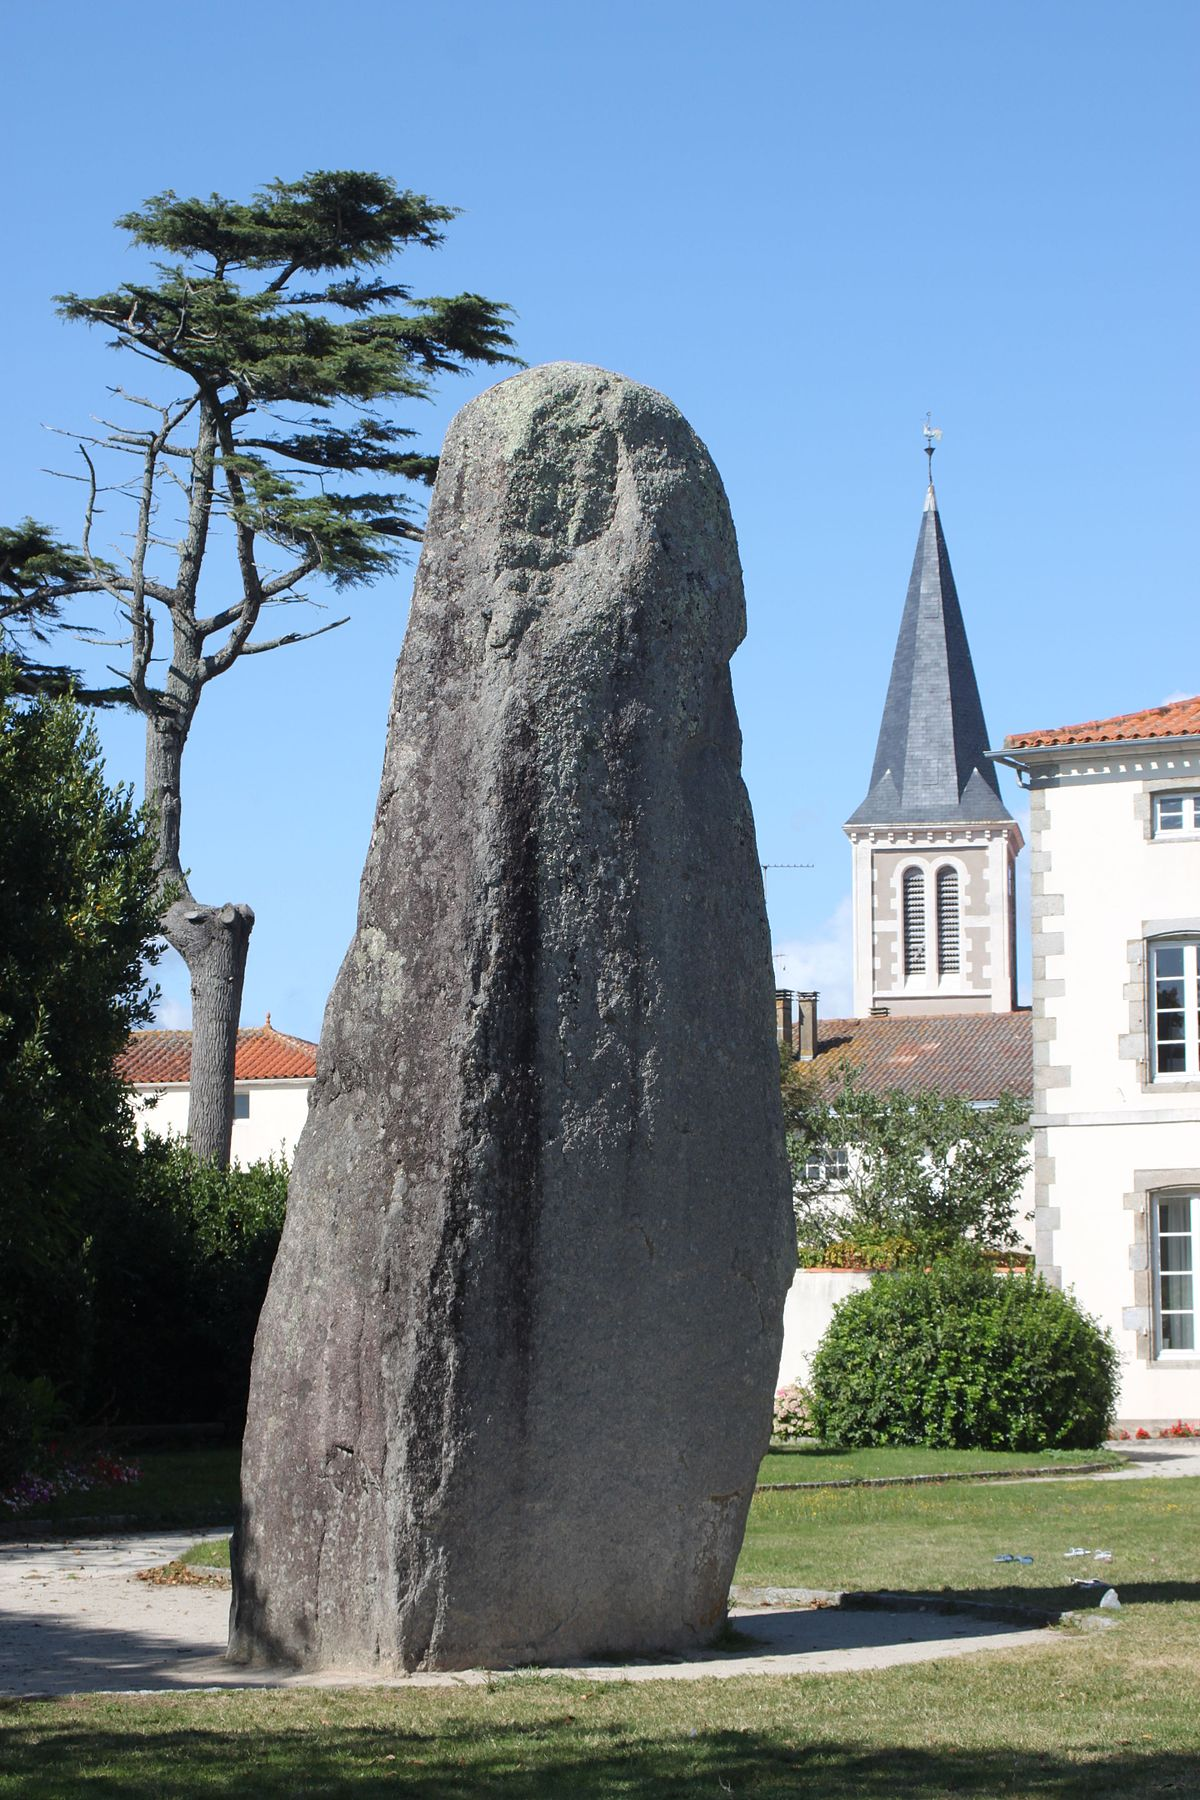 Menhir von bourg jardin wikipedia for Jardin wikipedia